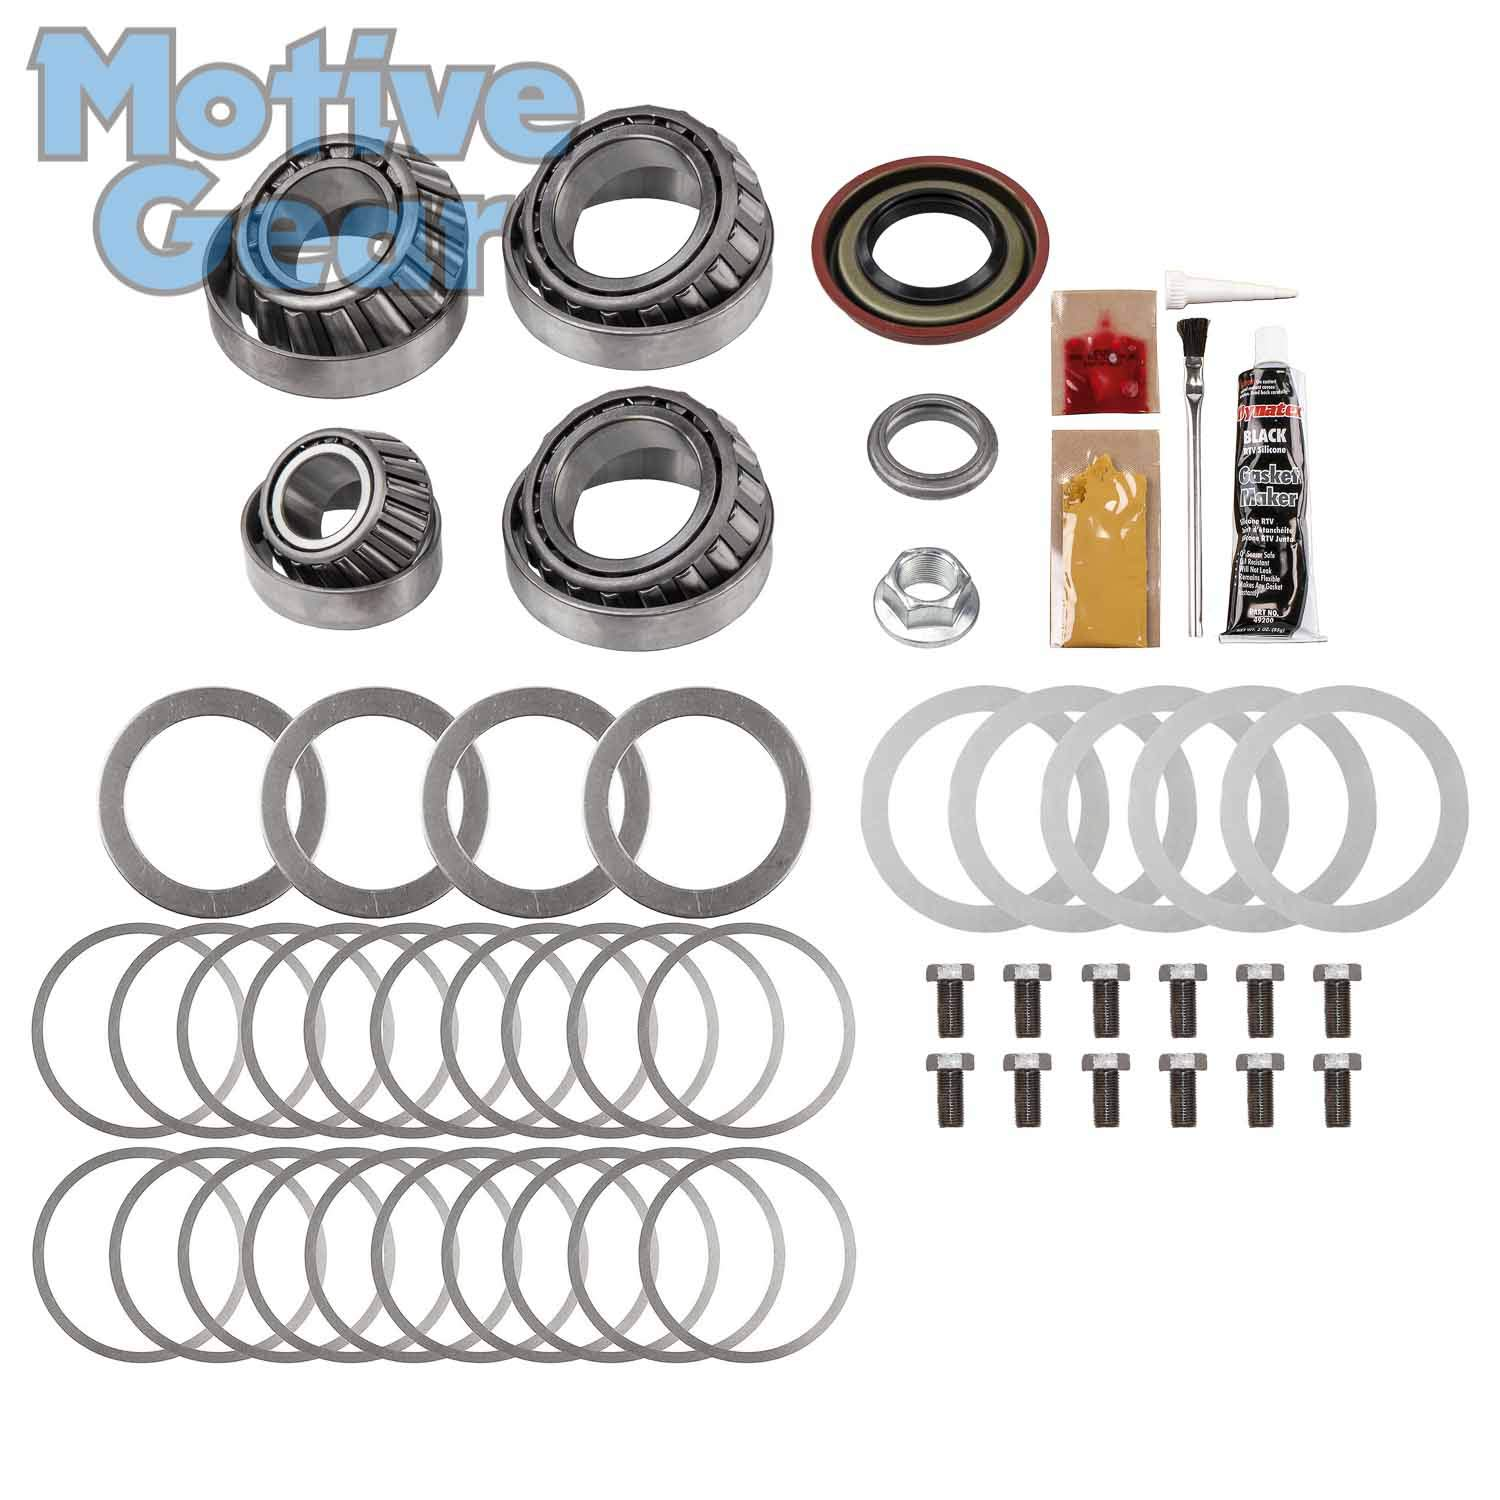 MK Ford 10.5 08-10 Motive Gear R10.5FRLMK Light Duty Koyo Bearing Kit